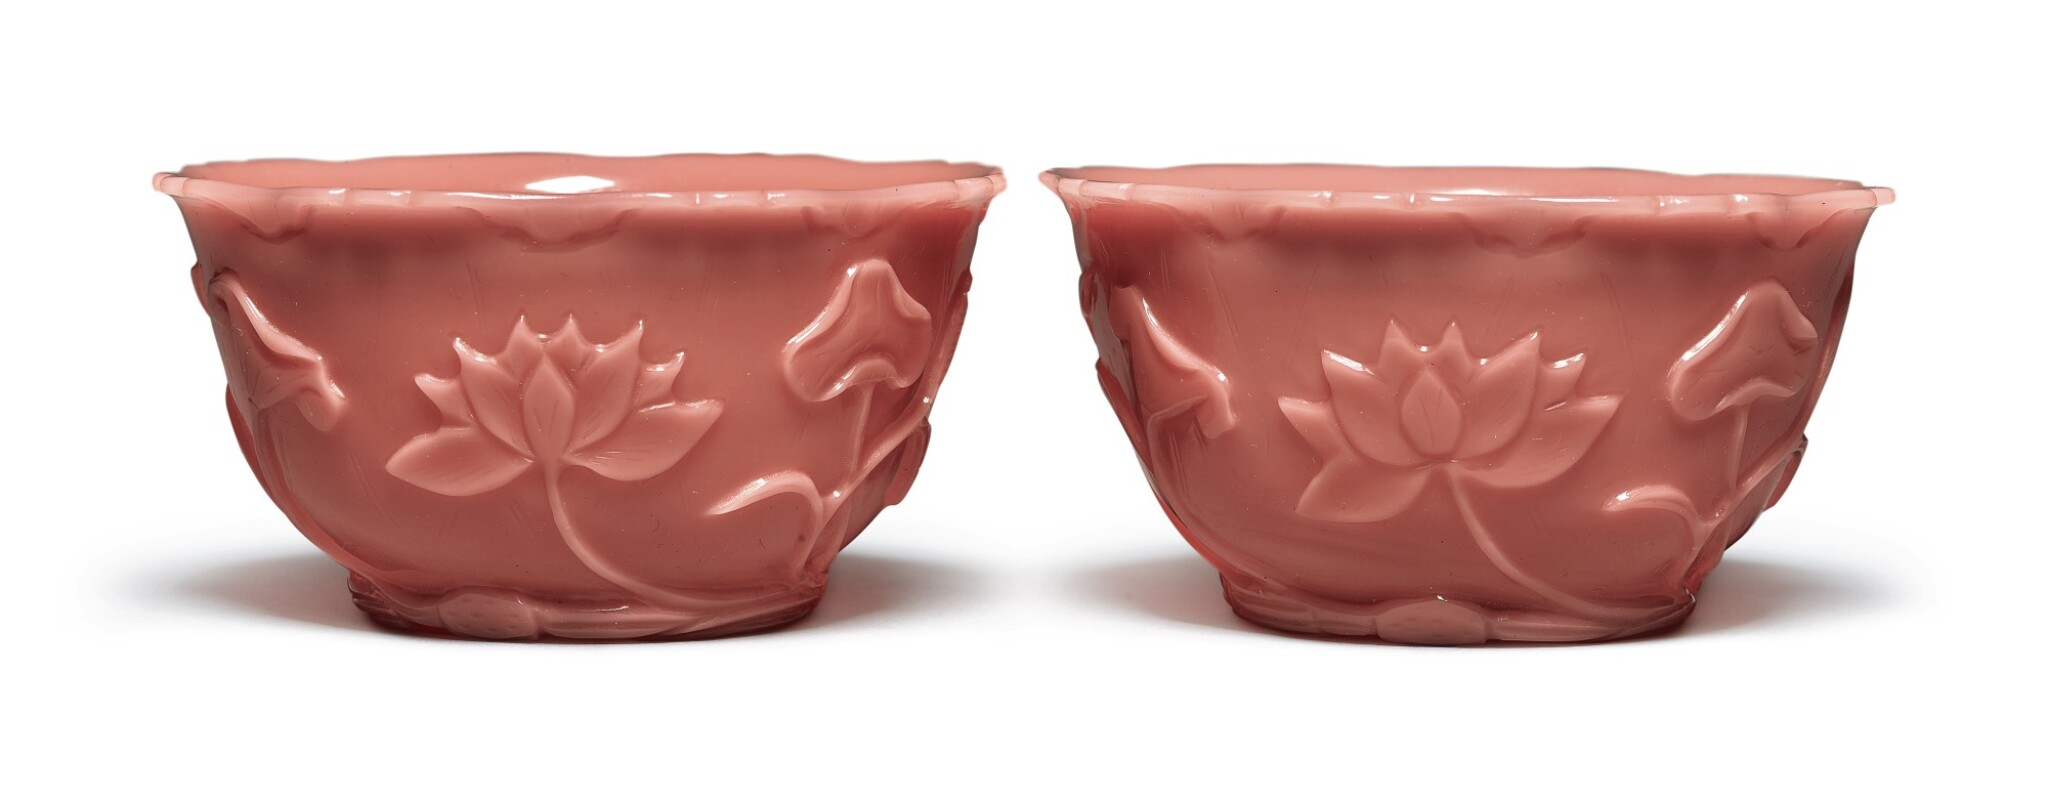 View 1 of Lot 1017. A PAIR OF CARVED PINK GLASS 'LOTUS' BOWLS, QING DYNASTY, 19TH CENTURY.